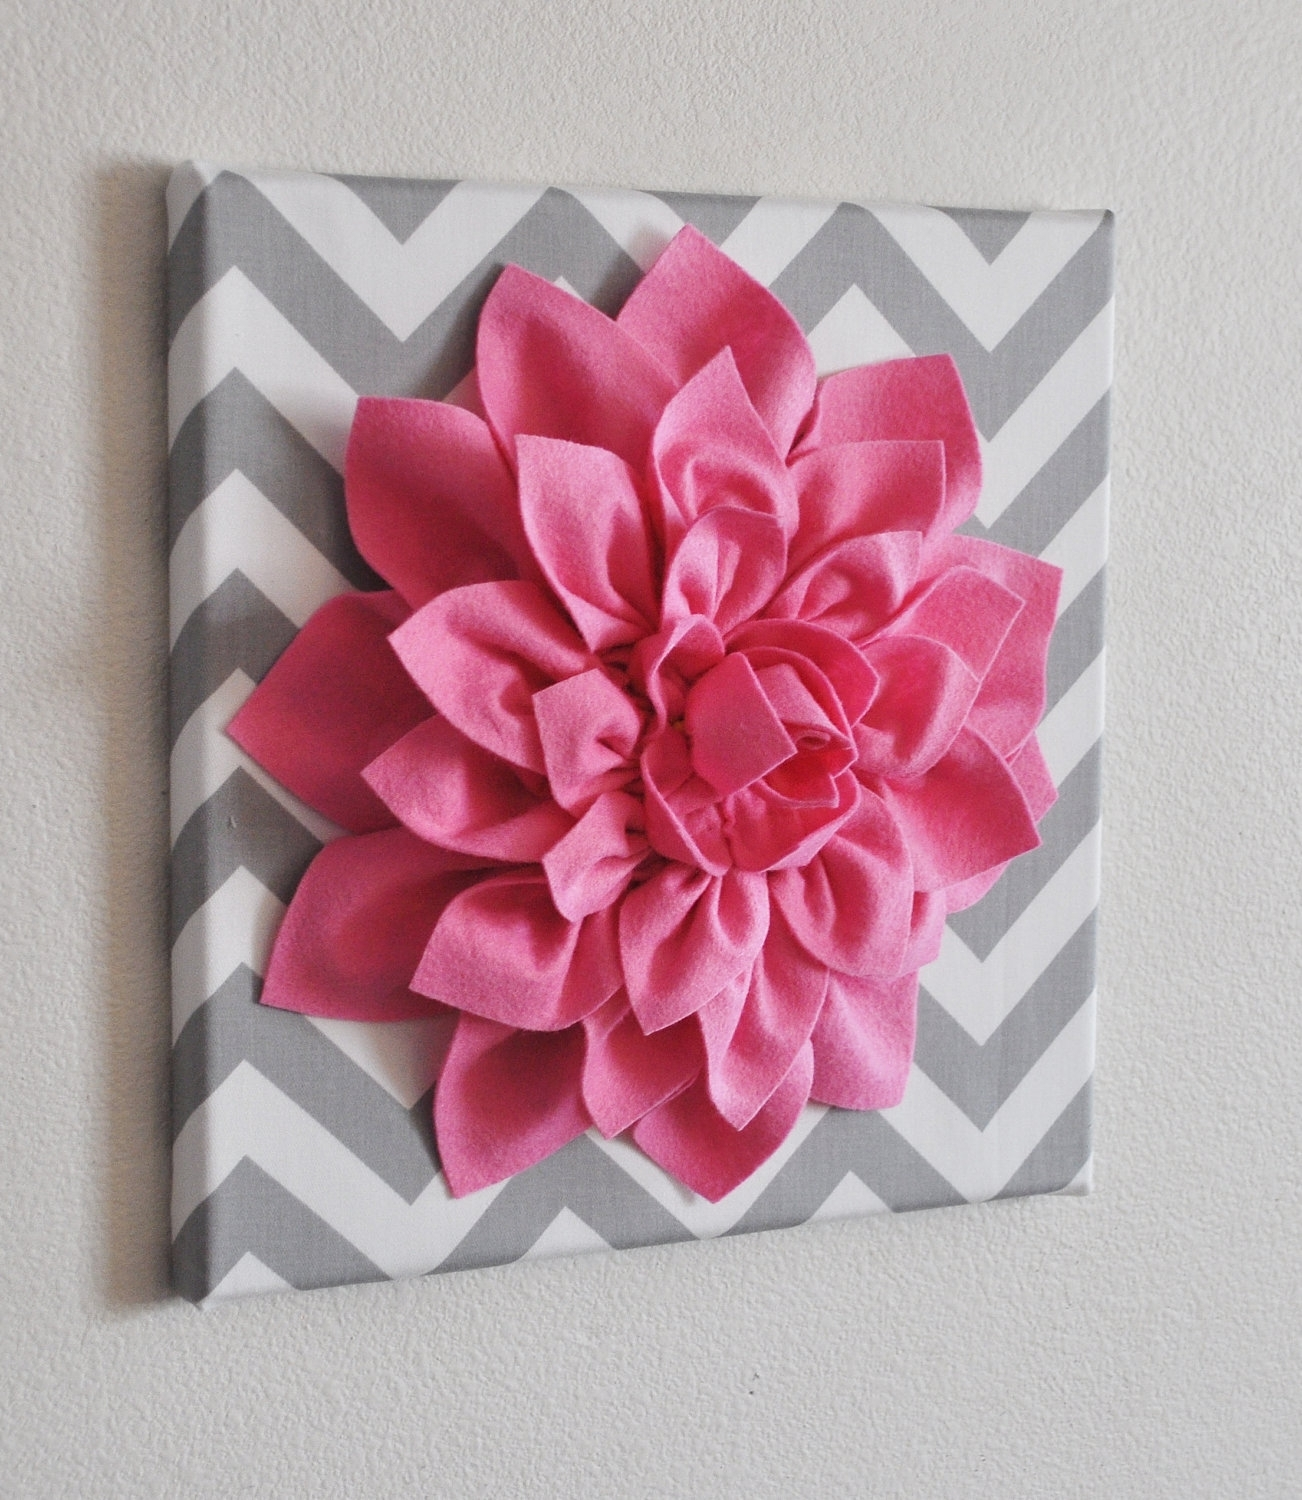 Bright Pink Wall Flower Bright Pink Dahlia On Gray And White Pertaining To 2017 Fabric Flower Wall Art (View 13 of 15)